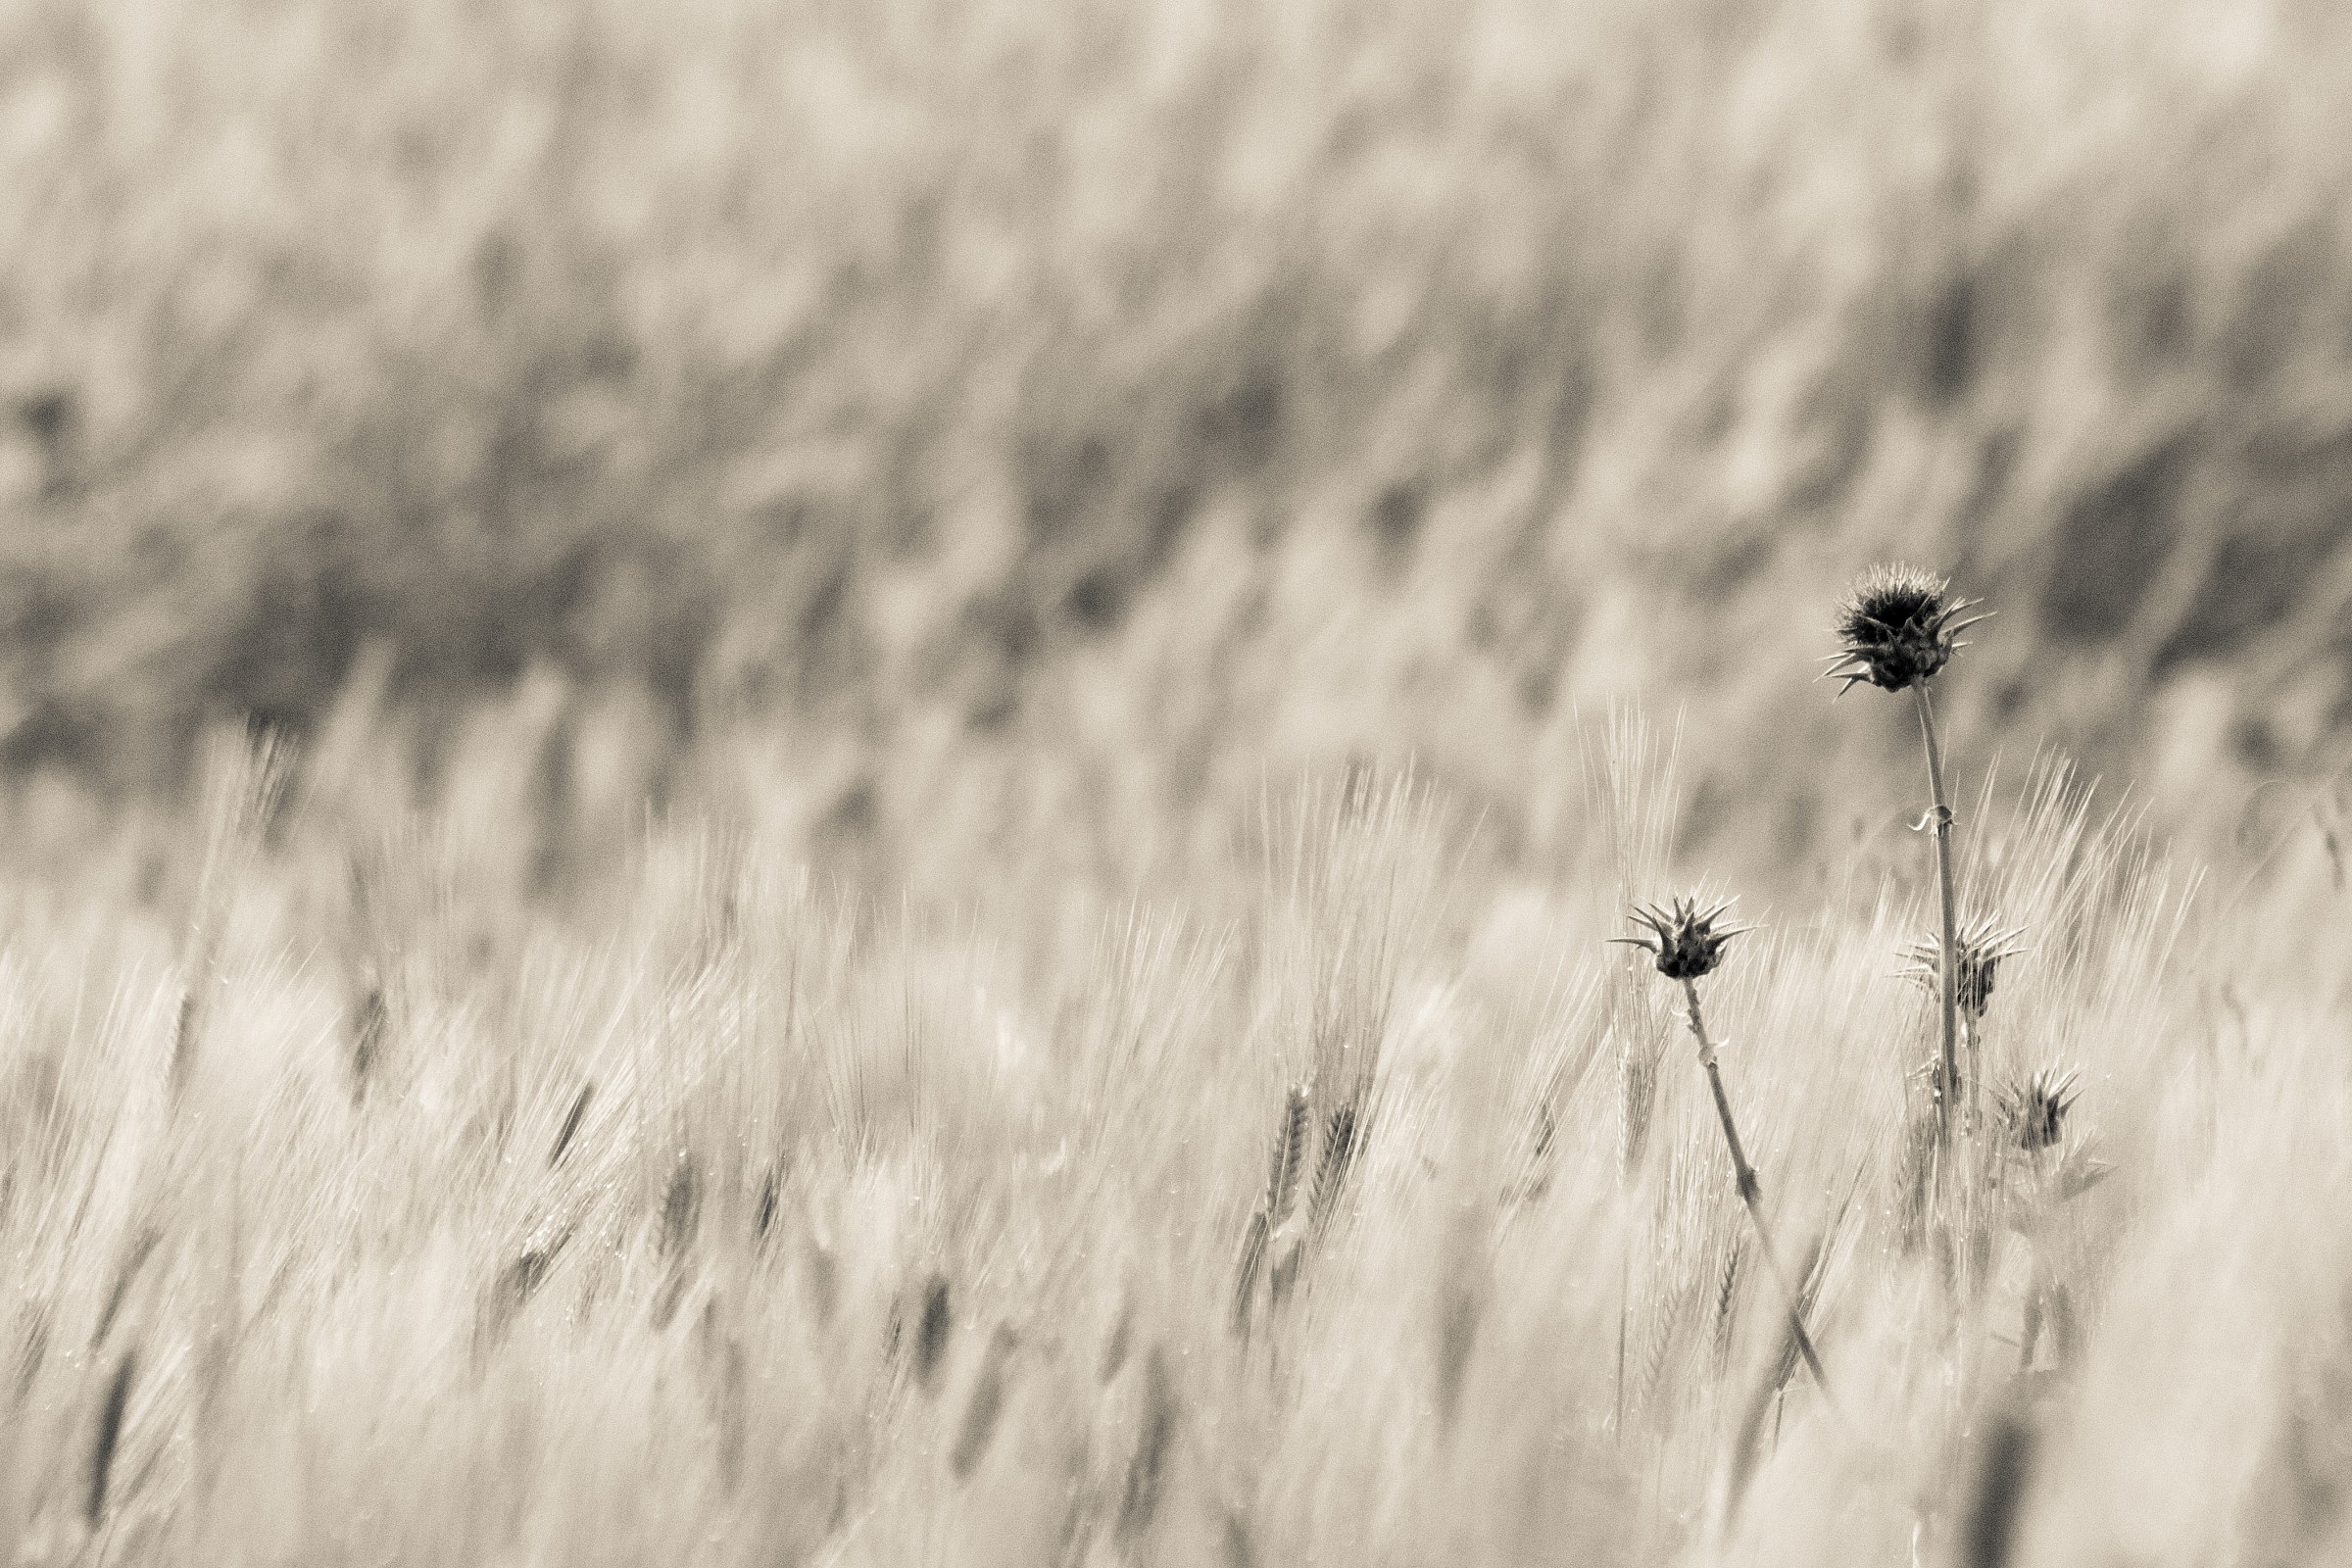 Solitary in the wheat...